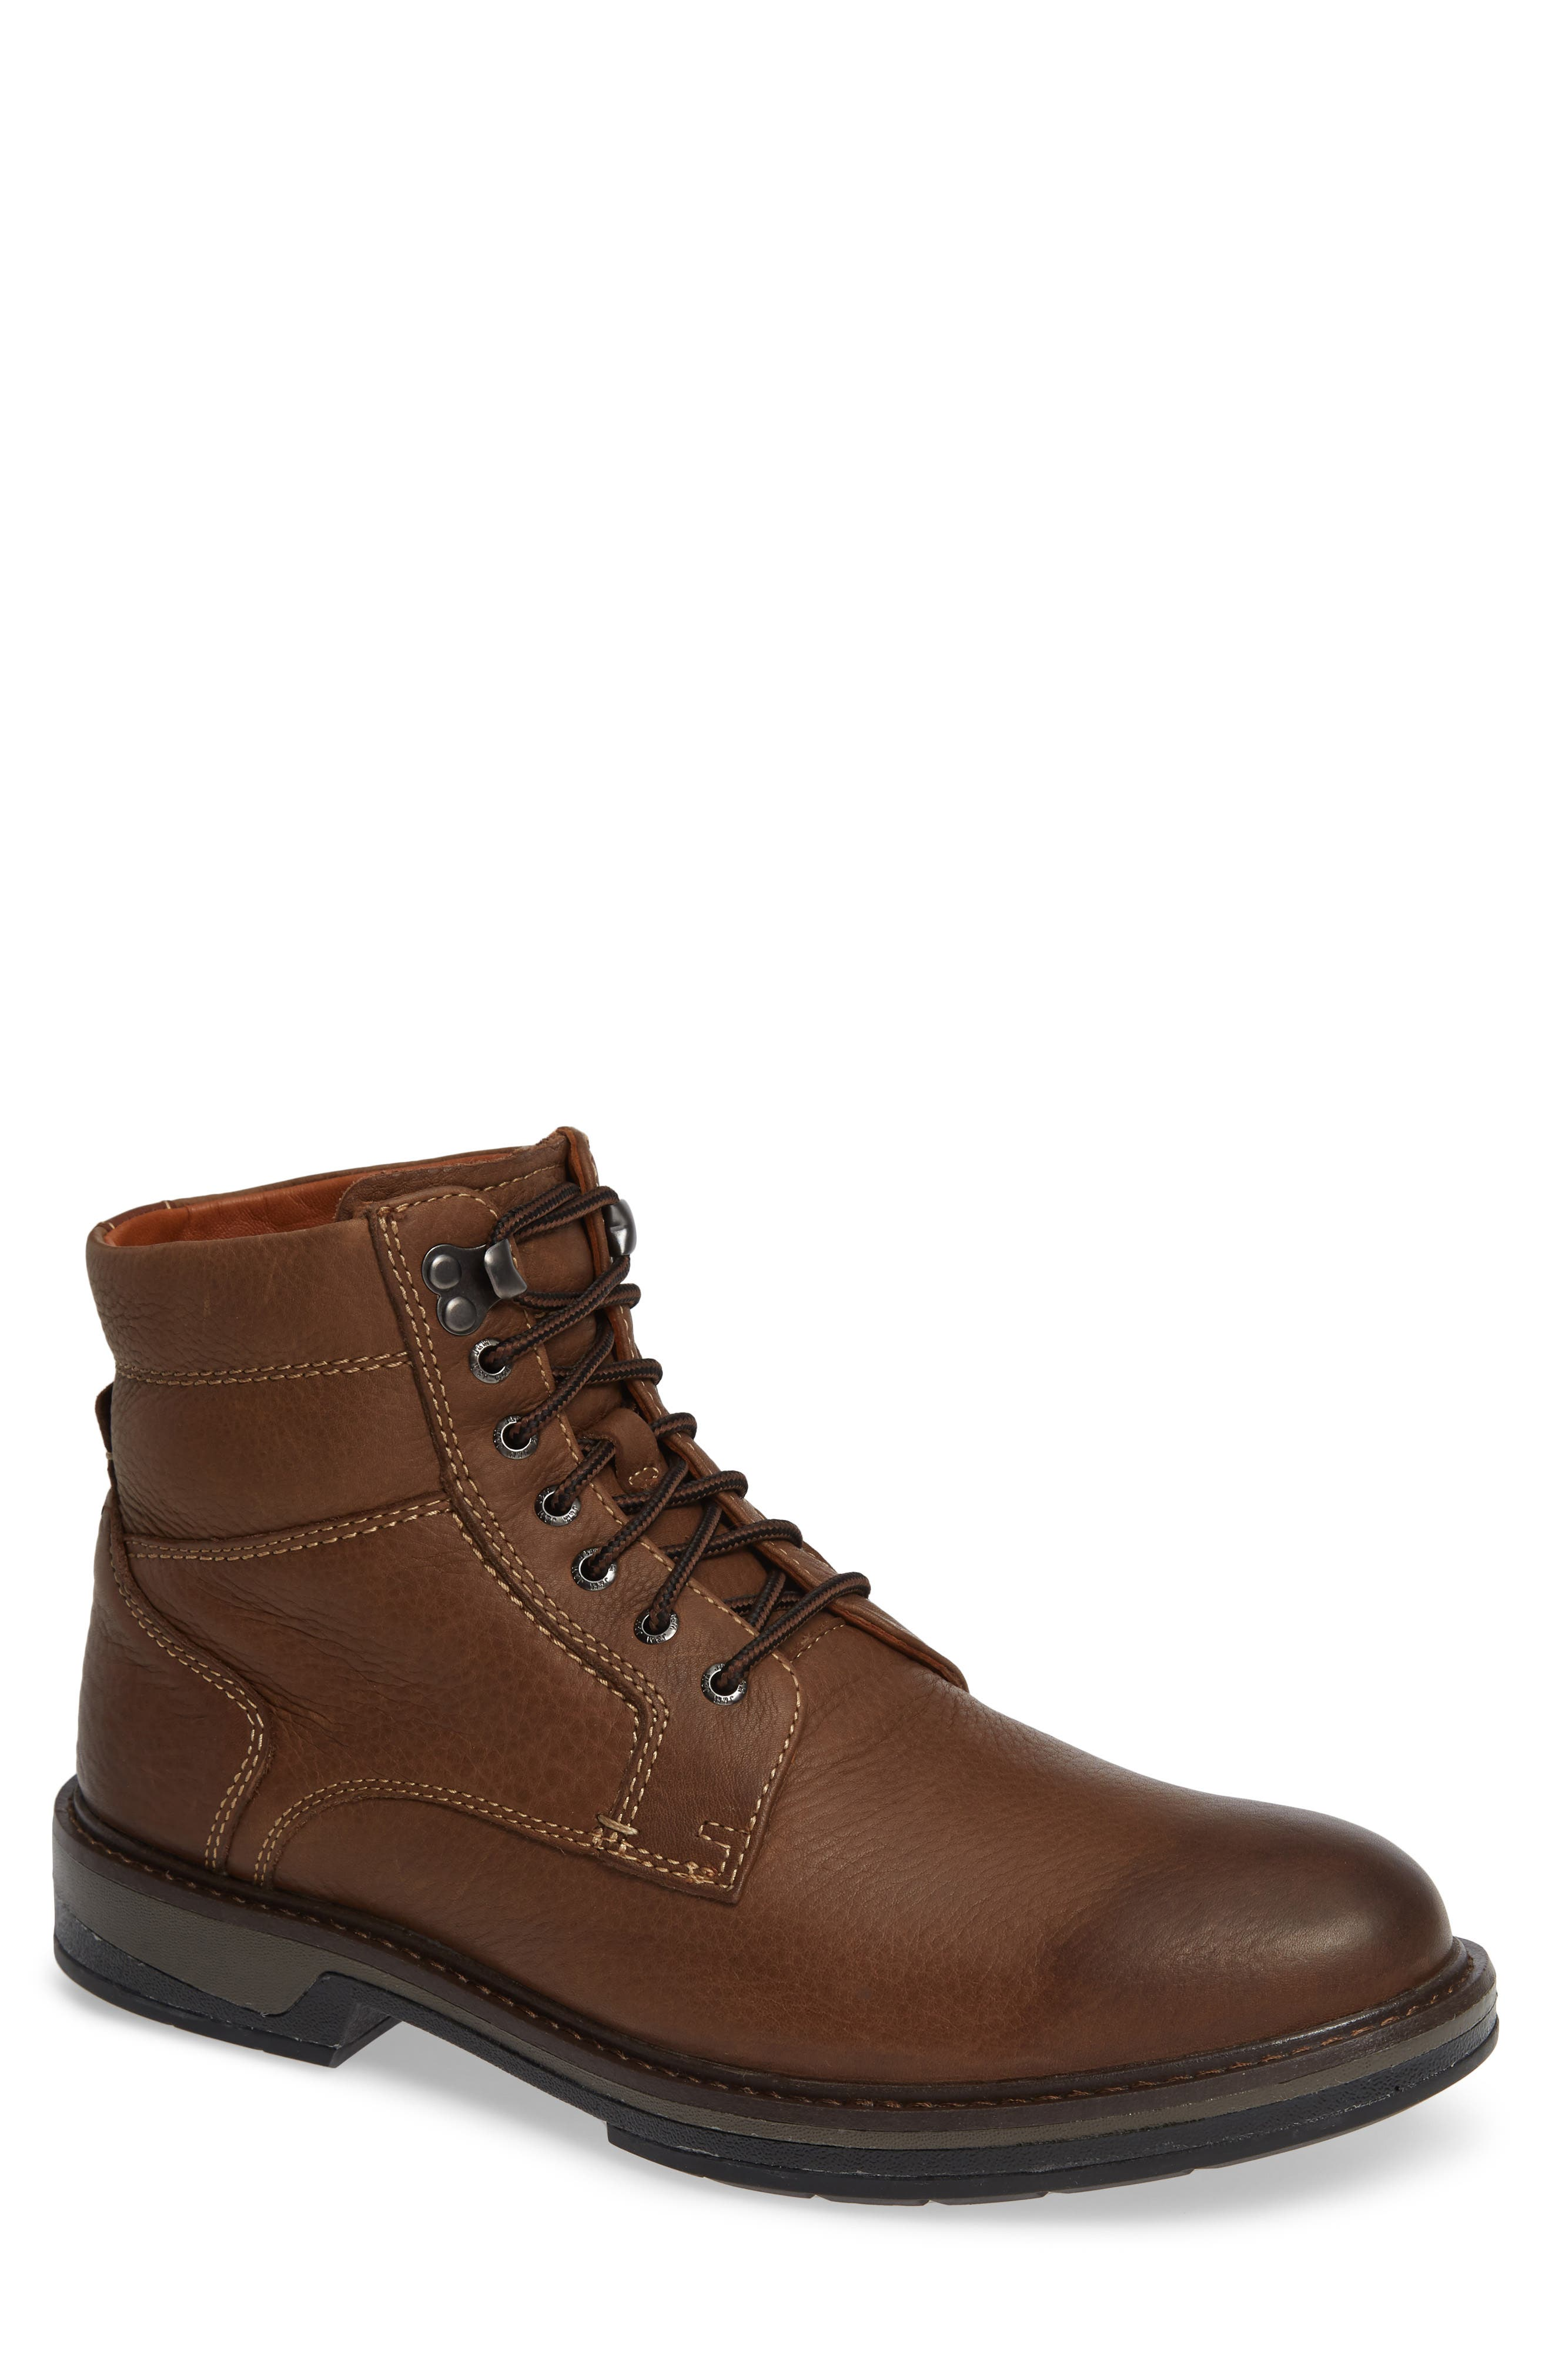 Rutledge Genuine Shearling Lined Waterproof Boot,                             Main thumbnail 1, color,                             BROWN OILED LEATHER